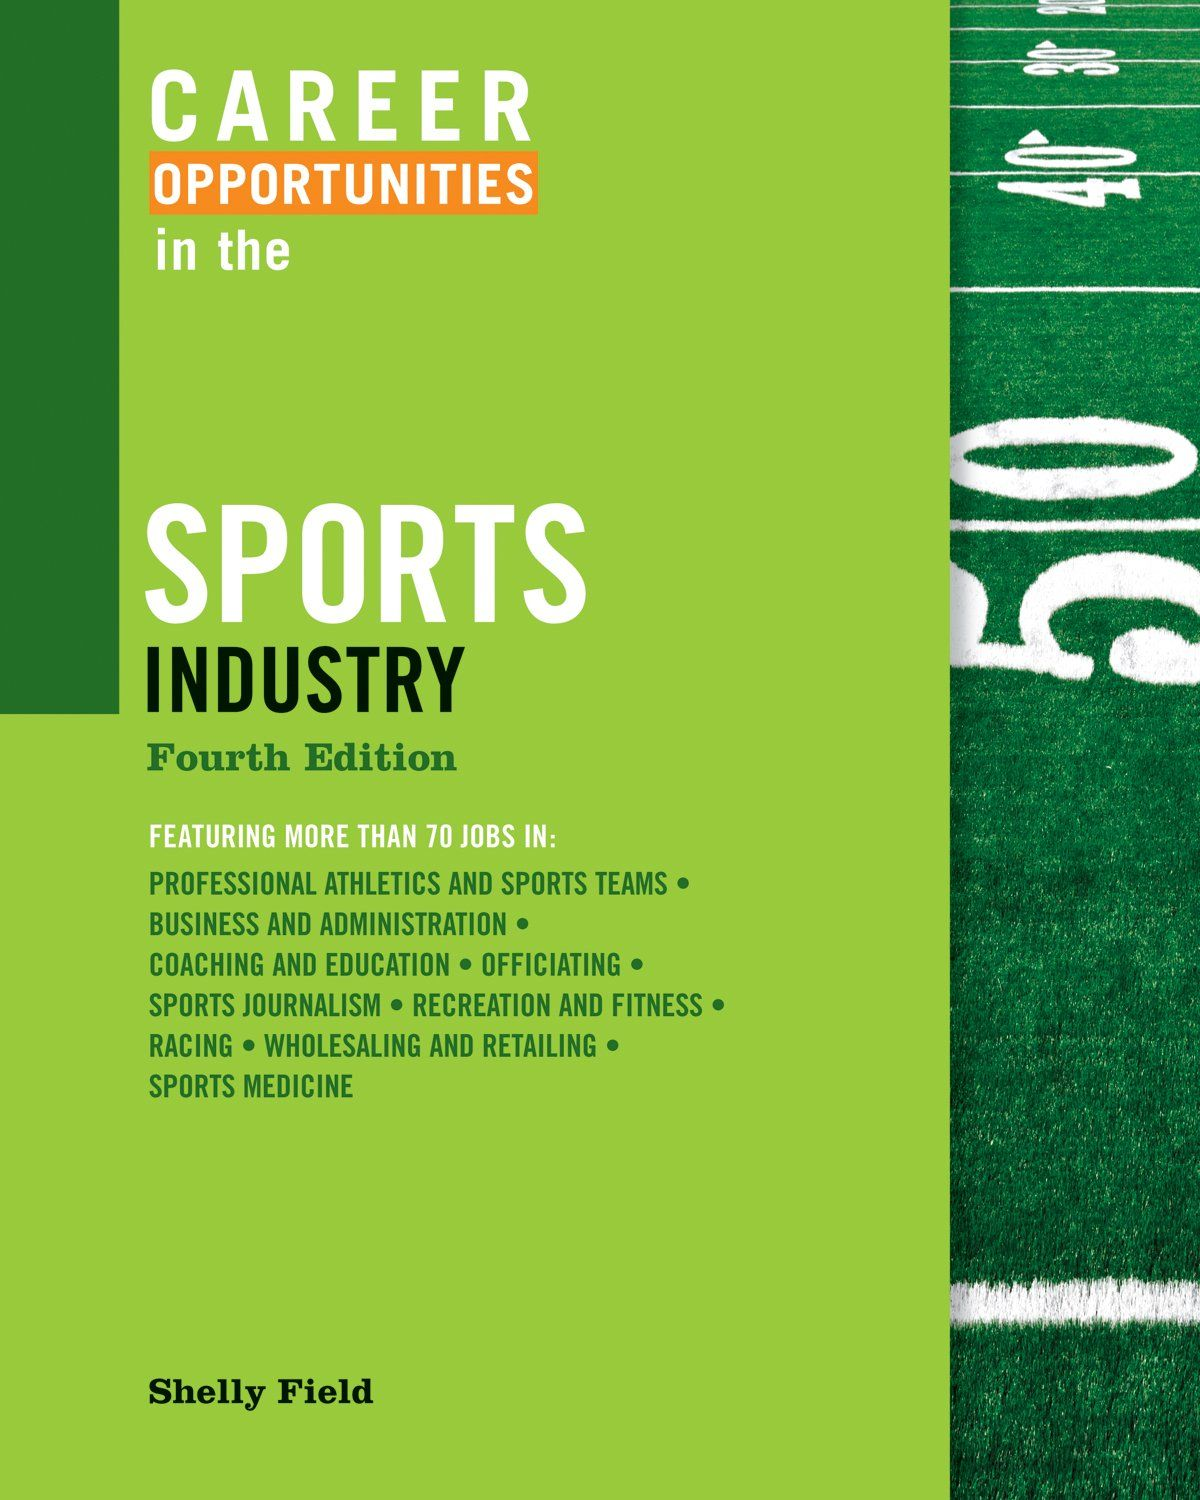 Career Opportunities in the Sports Industry, Fourth